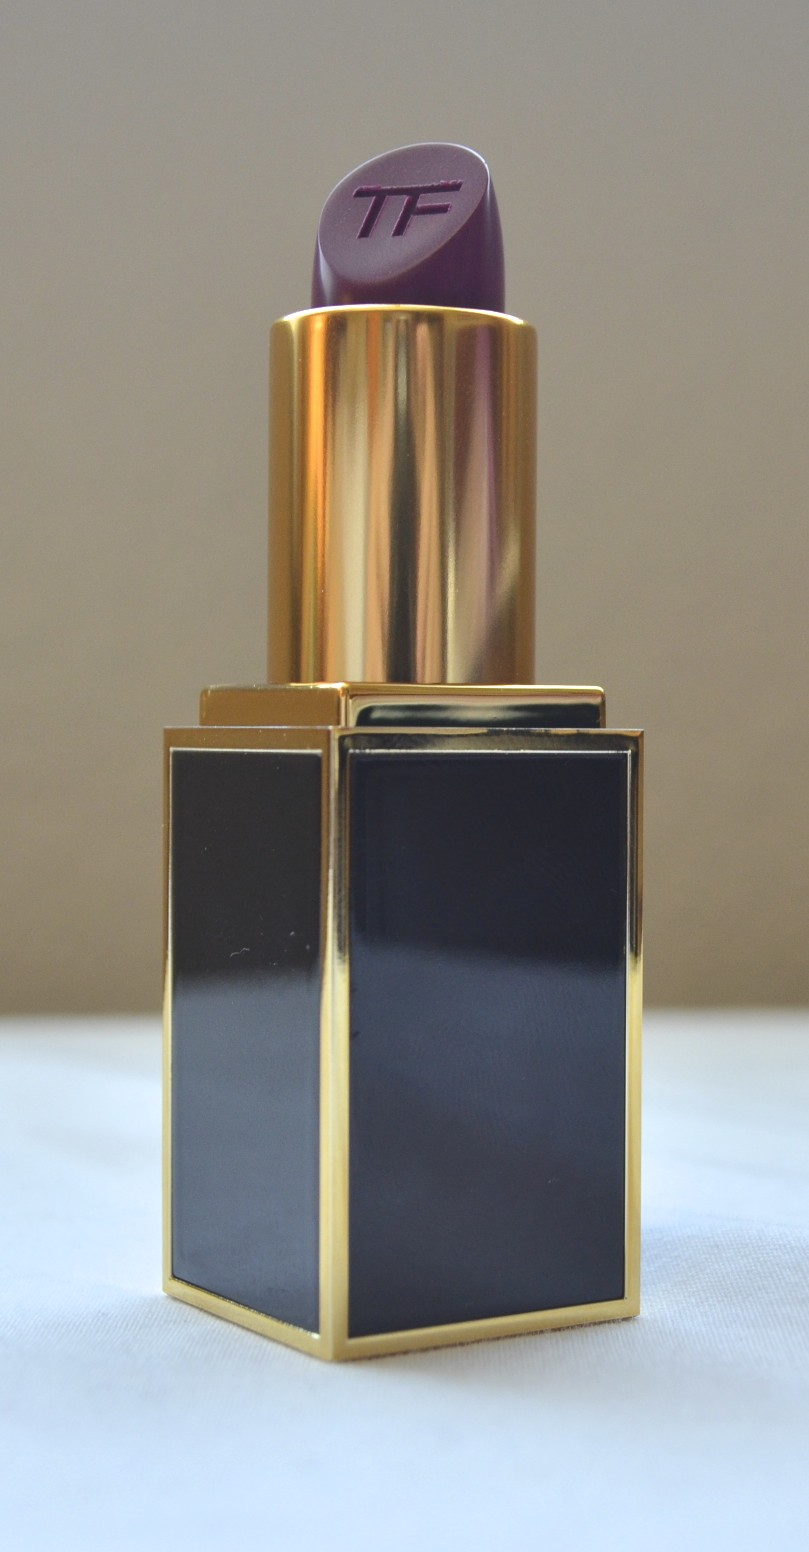 tom ford lipstick violet fatale review